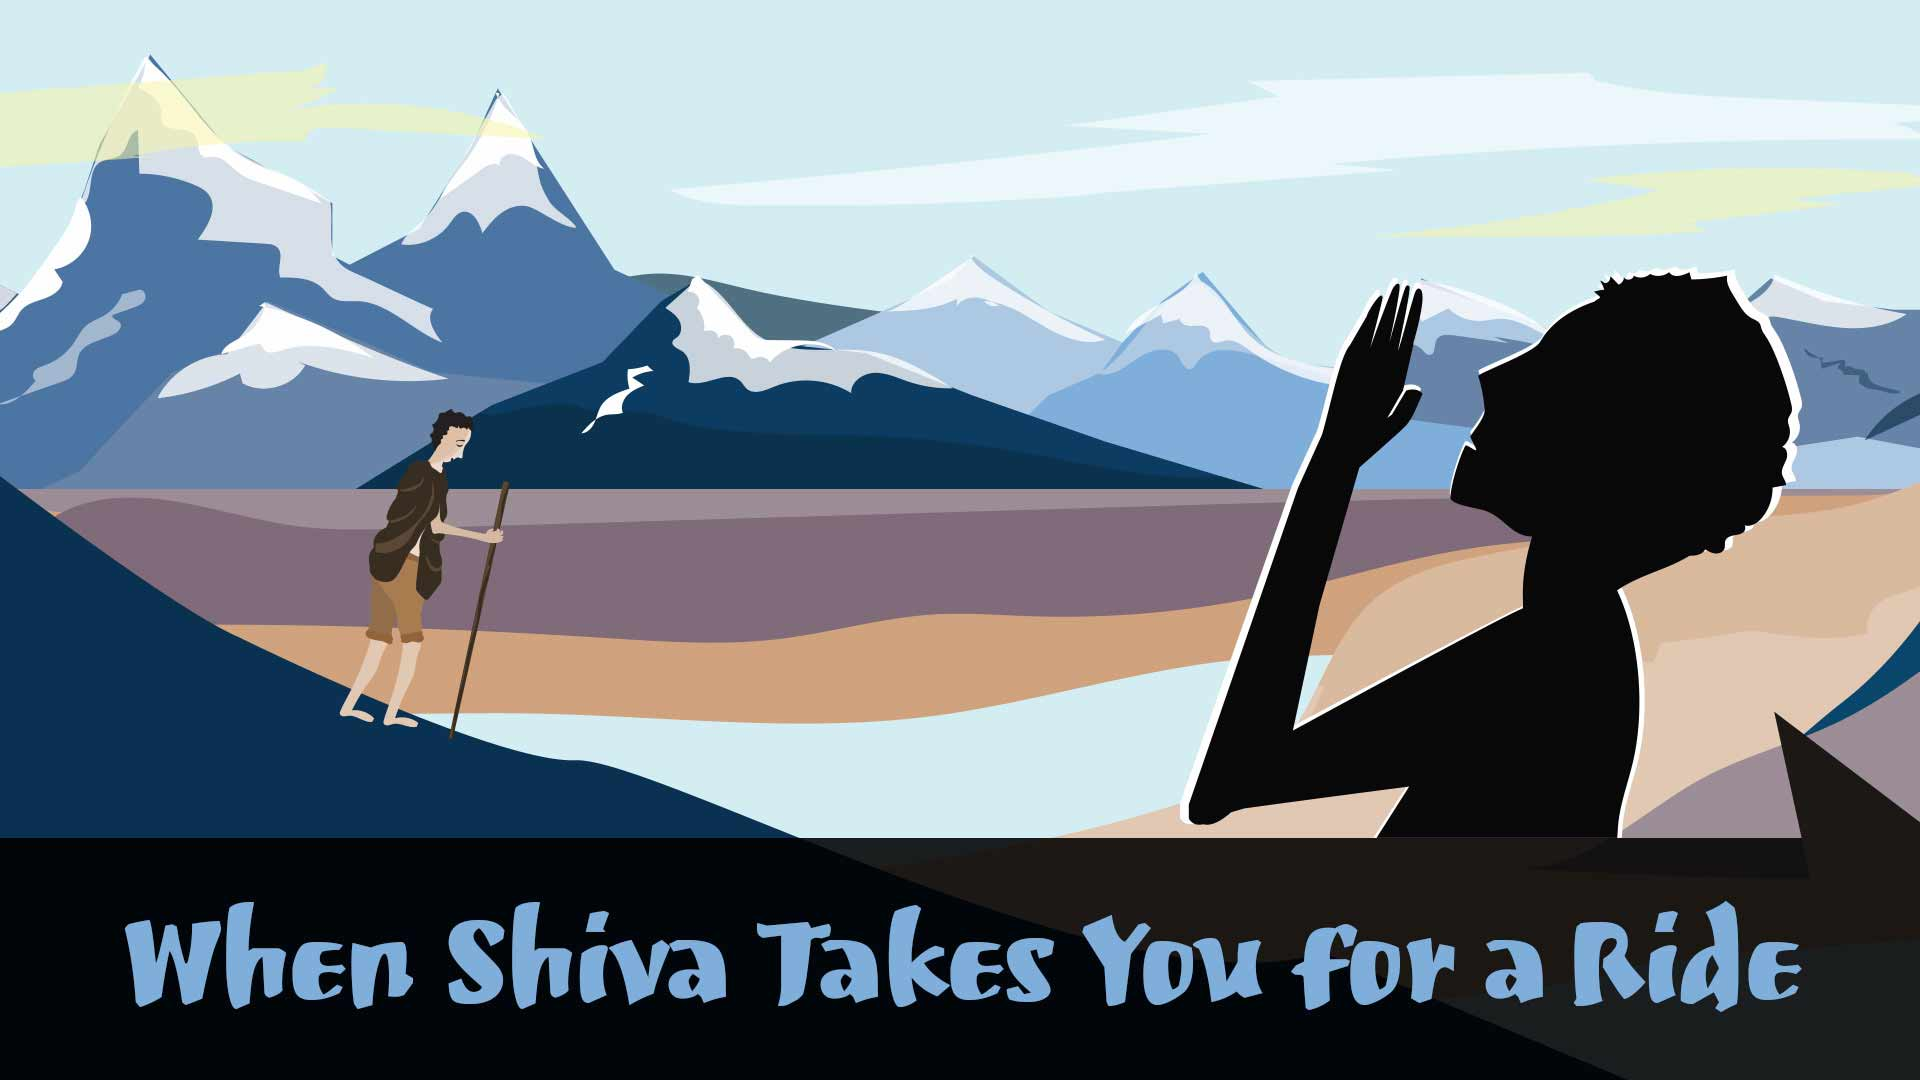 When Shiva Takes You for a Ride